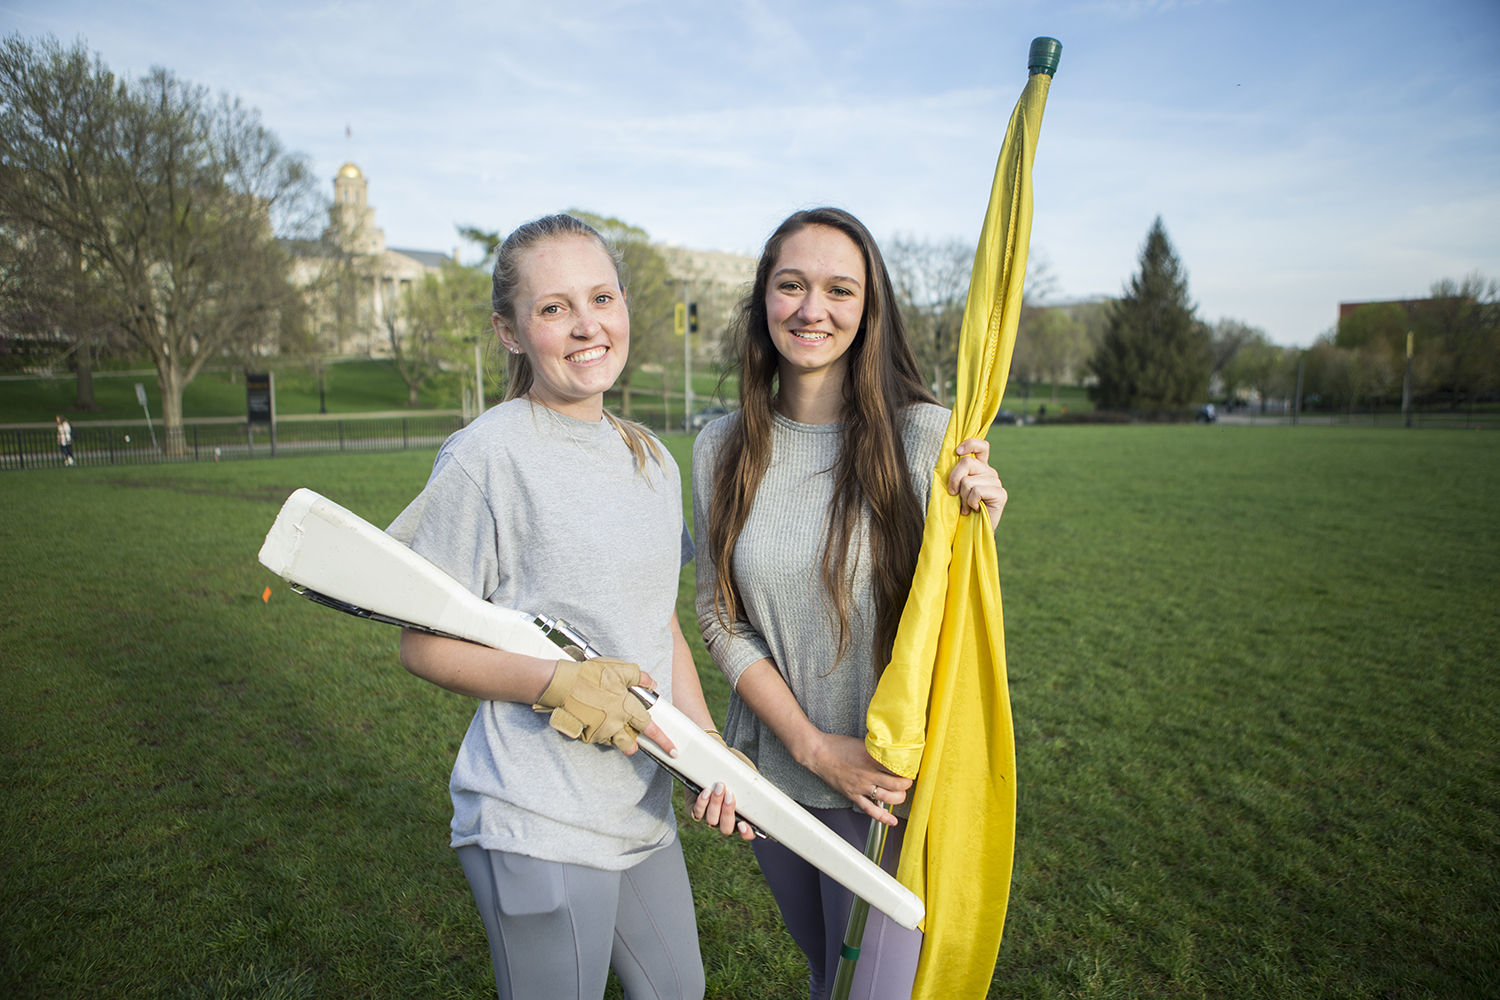 Color Guard Club Vice President, Haley Burton (left), and President, Joslyn Hagener, pose for a portrait at Hubbard Park on Monday, April 29, 2019. The new club will start classes and practices next fall for students of all experience levels to join.